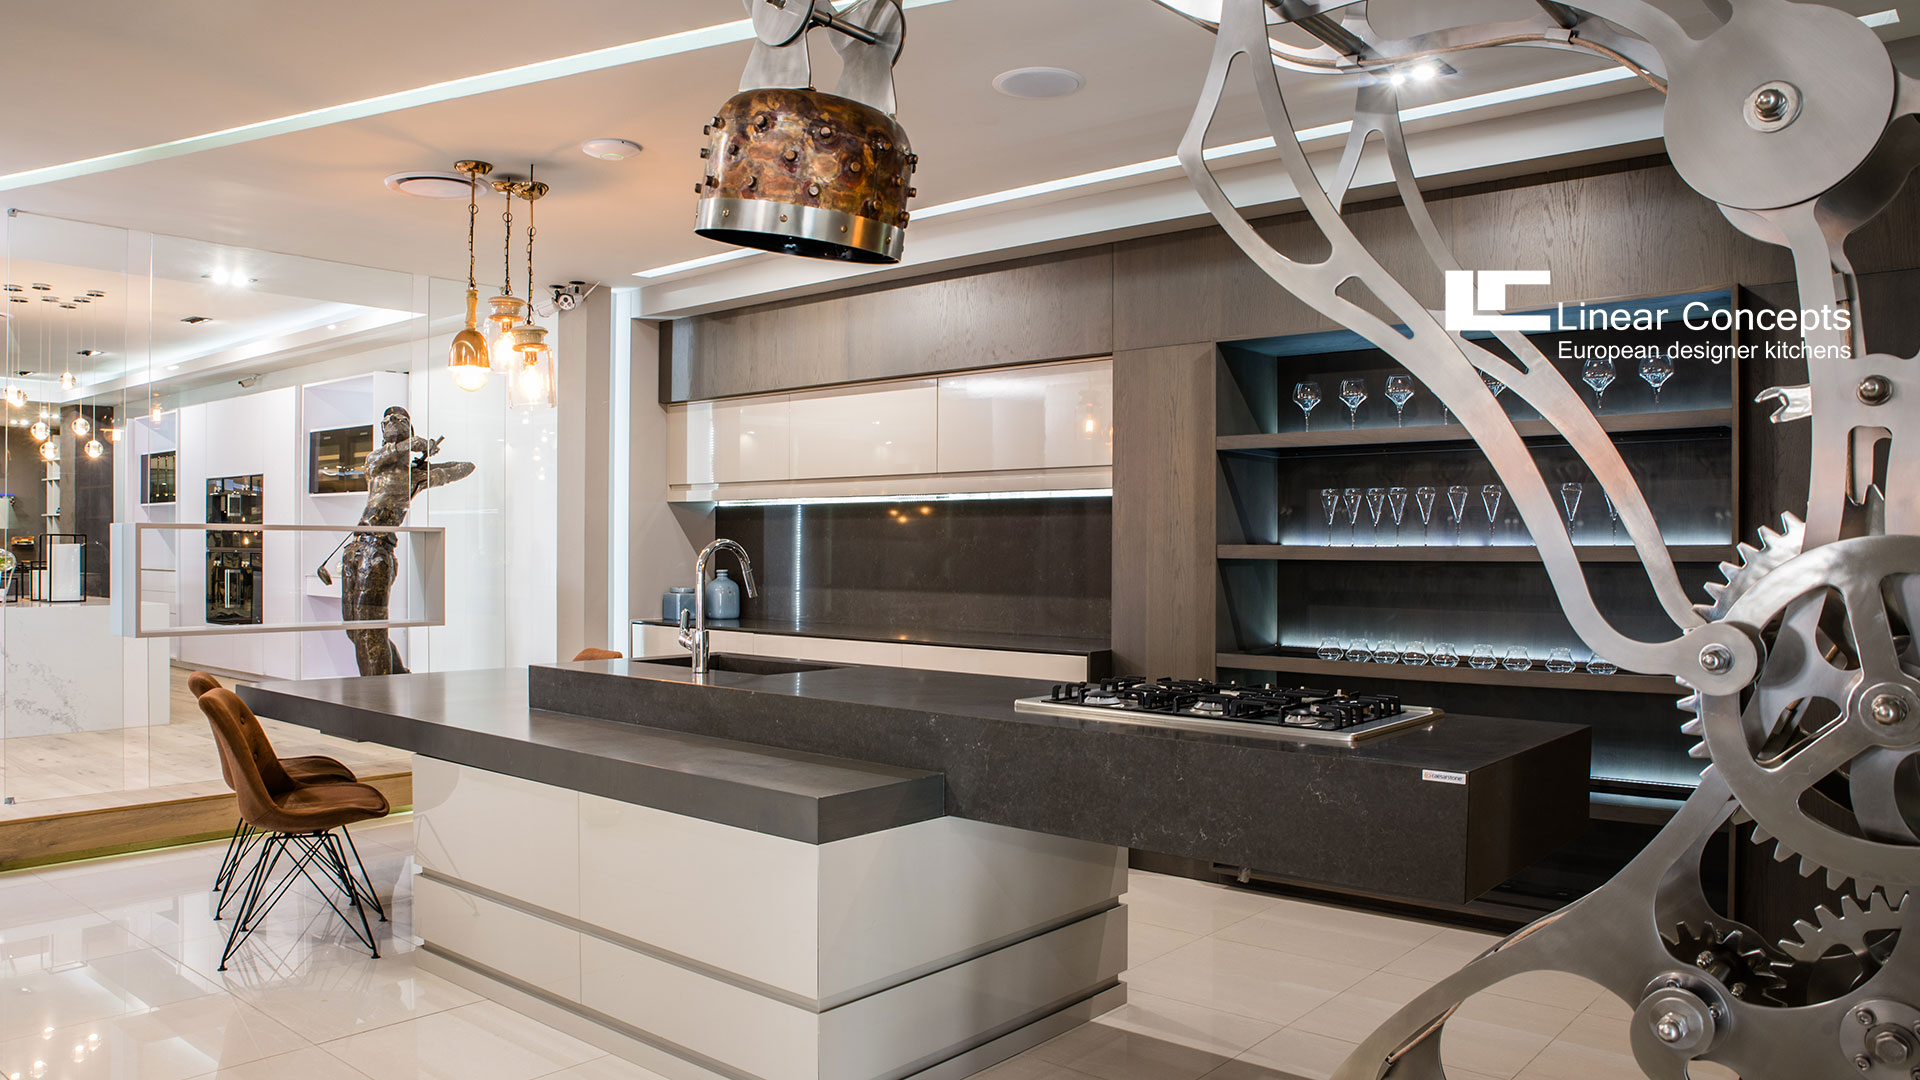 The Kitchen Furniture Company About Linear Concepts European Designer Kitchens South